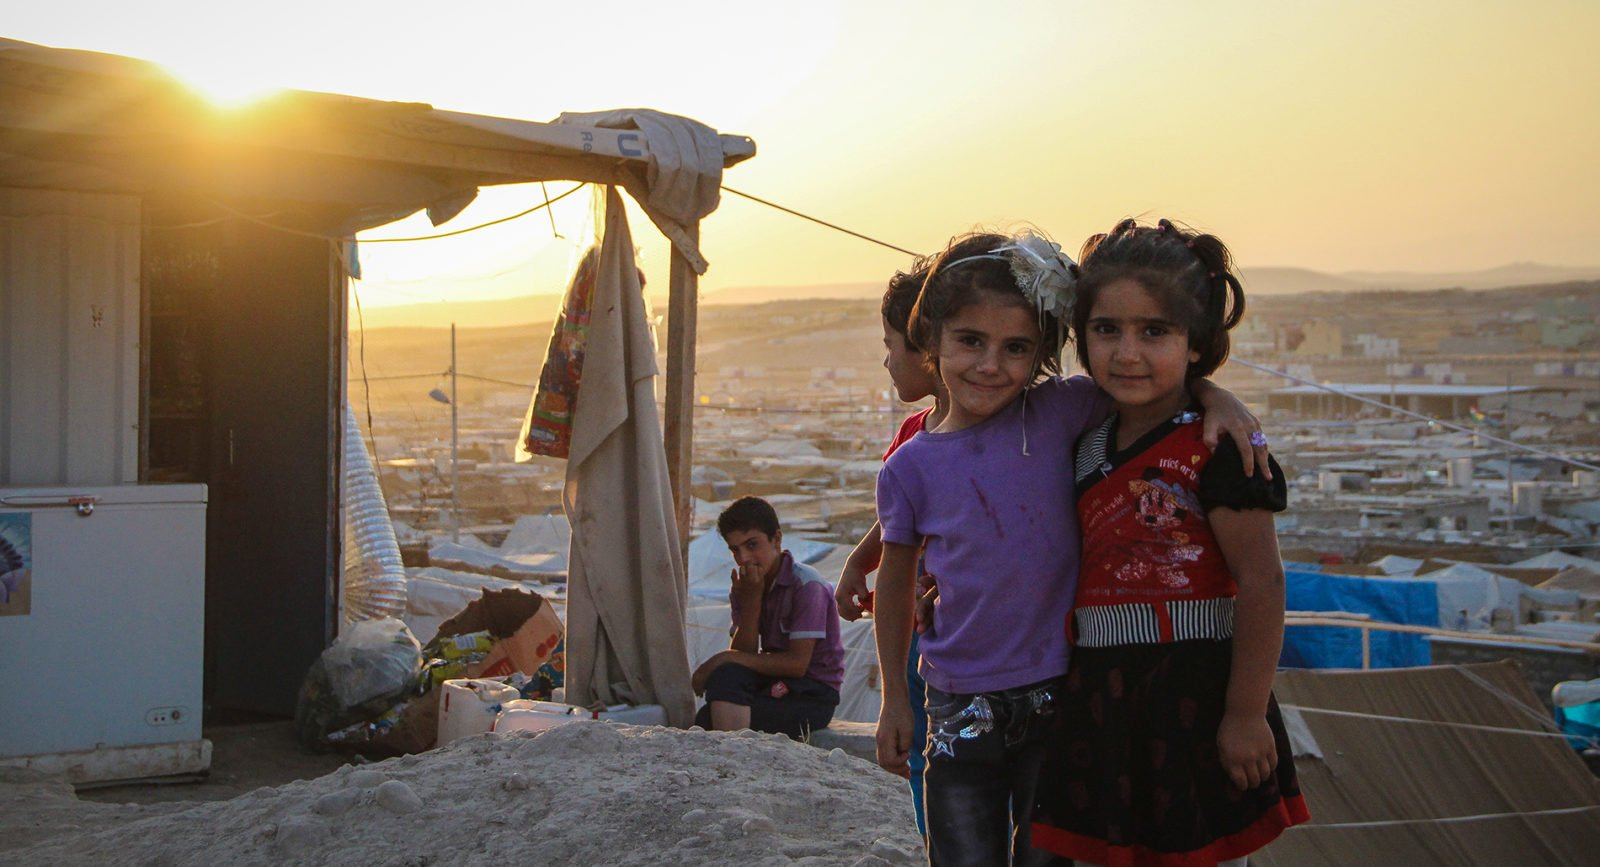 Two young girls in a refugee camp at sunset